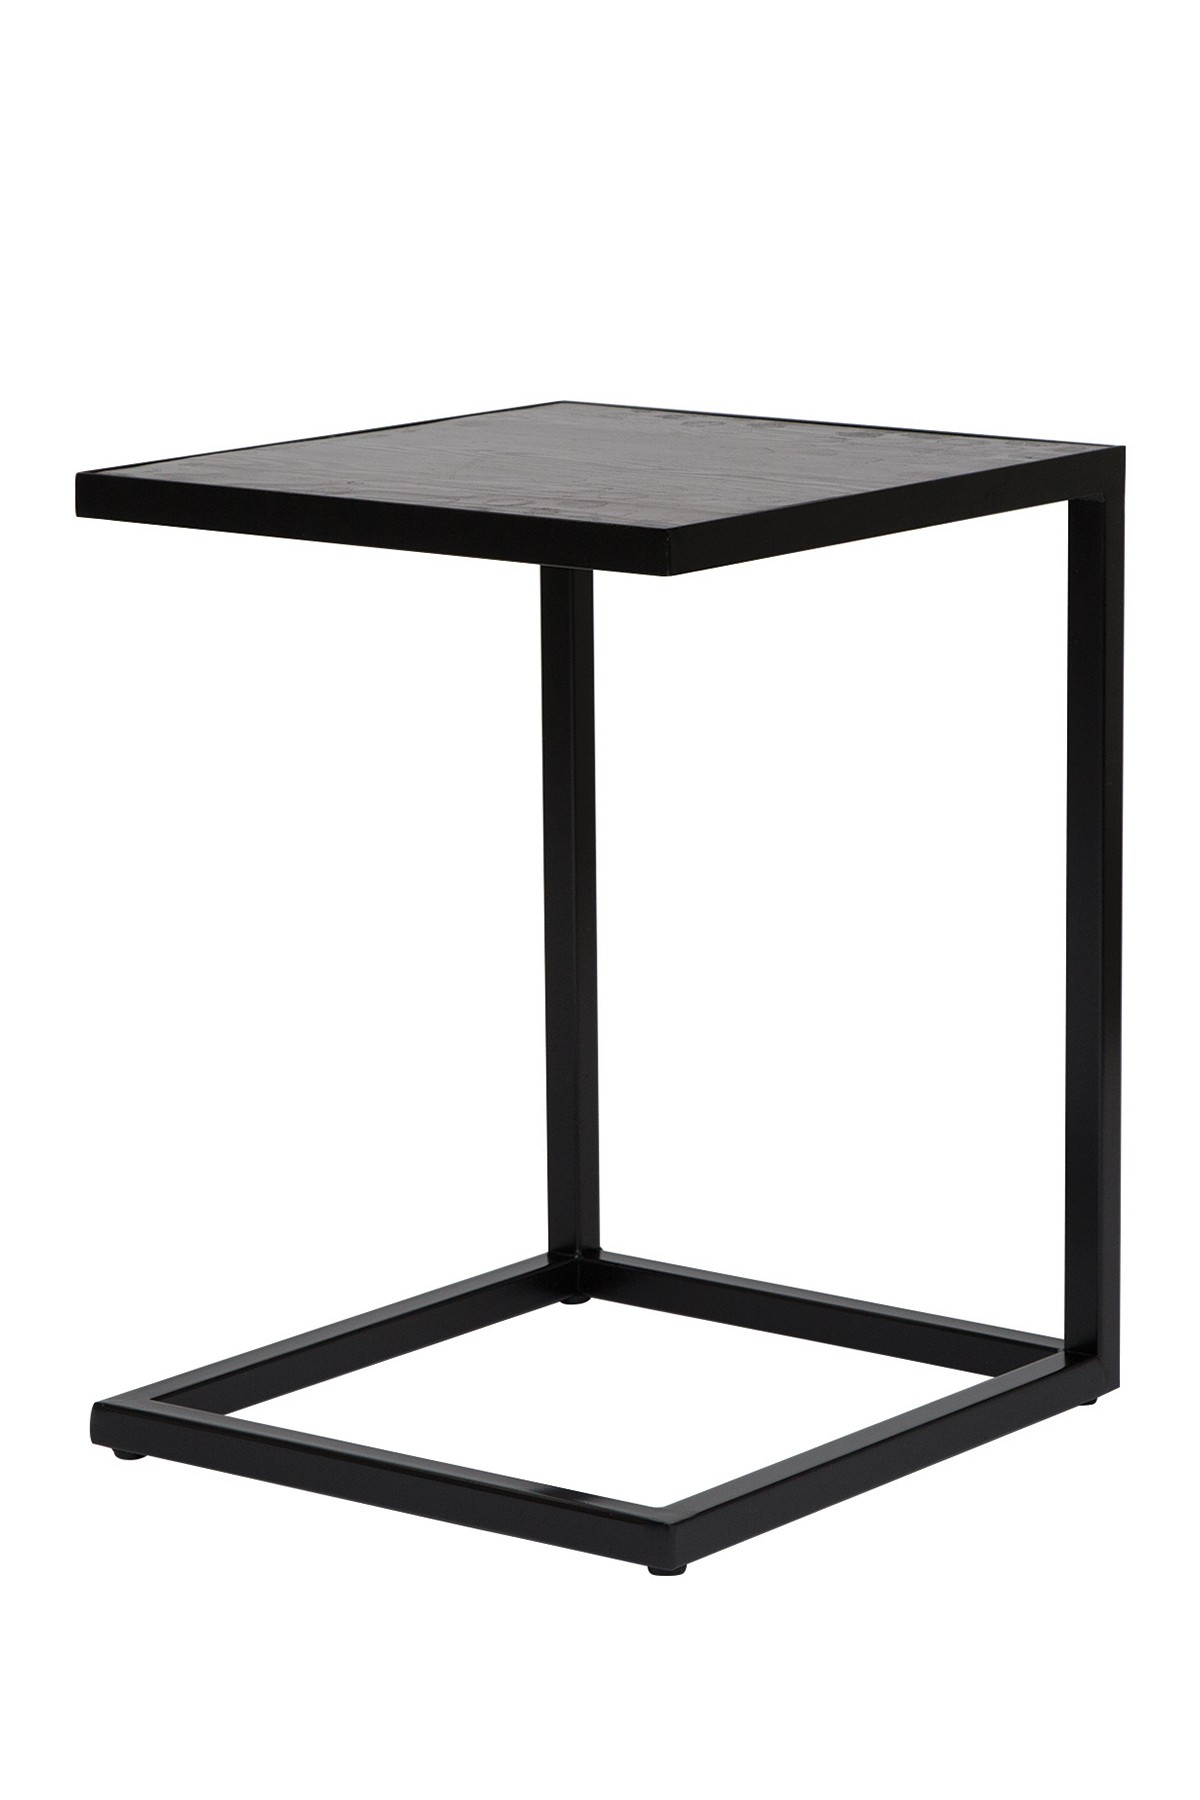 ptm natural wood frame ends accent table nordstrom rack outdoor seating pier one furniture dark brown end tables dining room west elm white console pottery barn kids coffee large